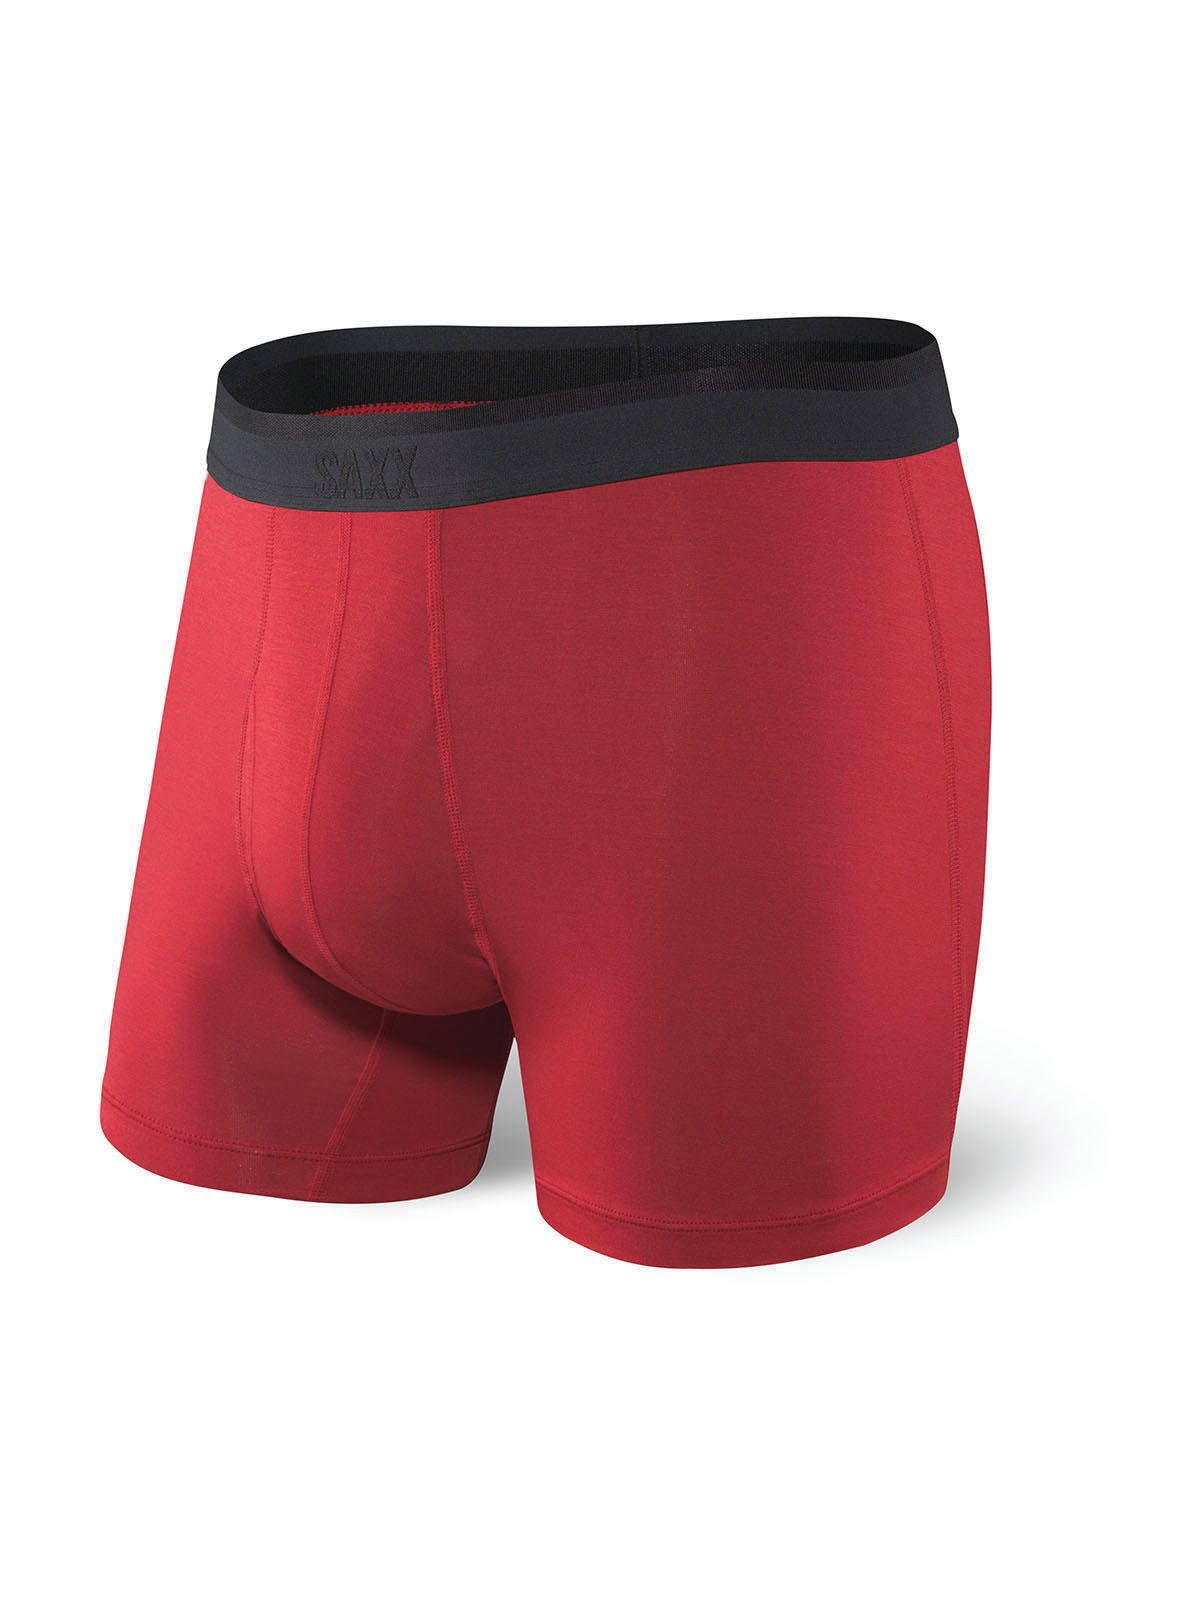 Saxx Platinum Red Men's Boxer Briefs